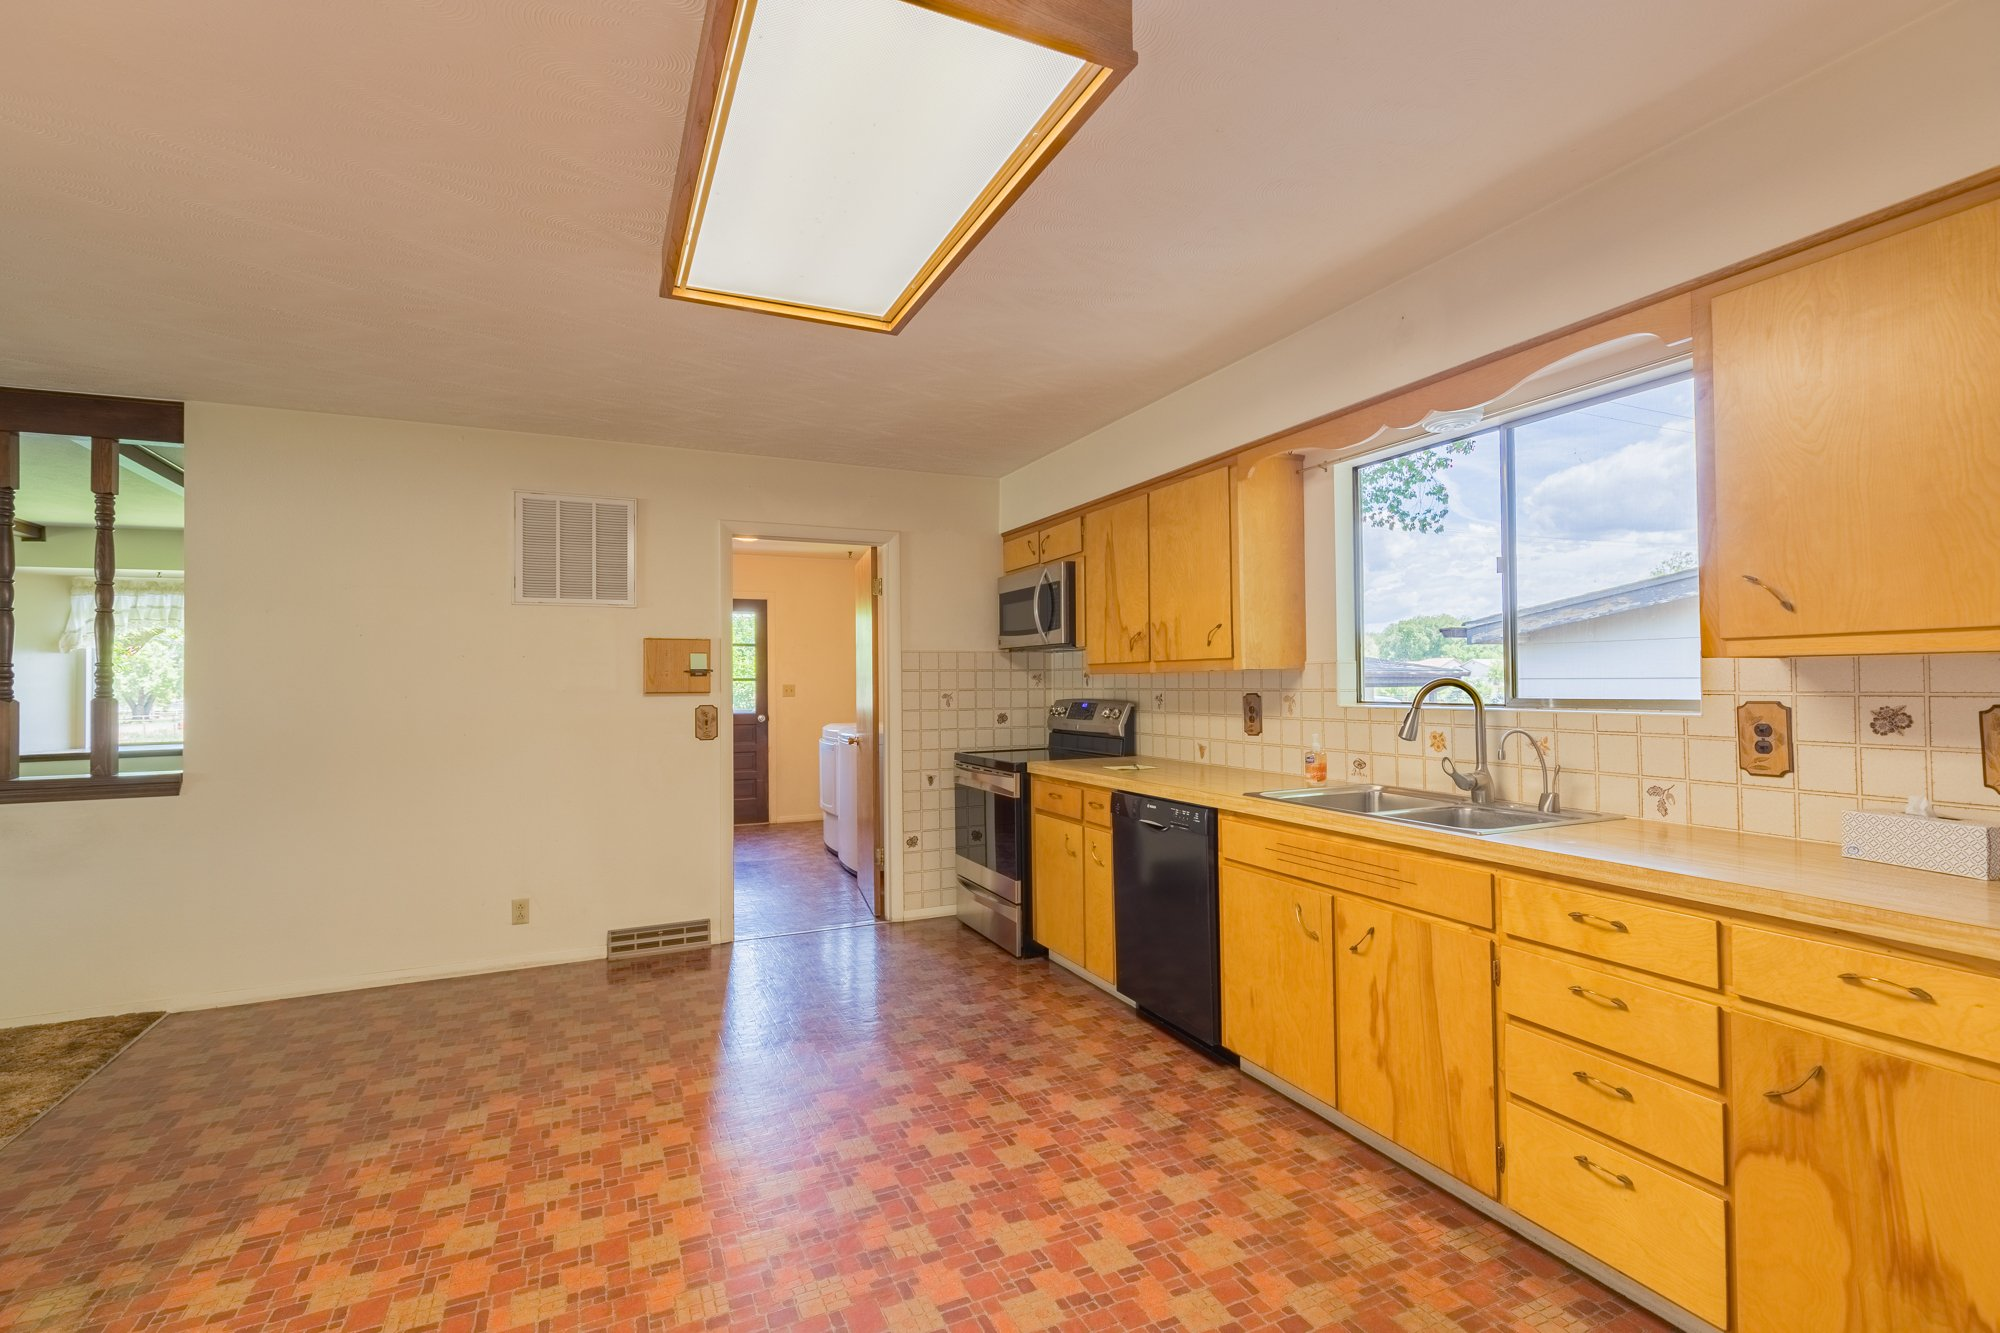 Kitchen to Laundry Room - 418 6400 Rd Montrose, CO 81403 - Atha Team Realty